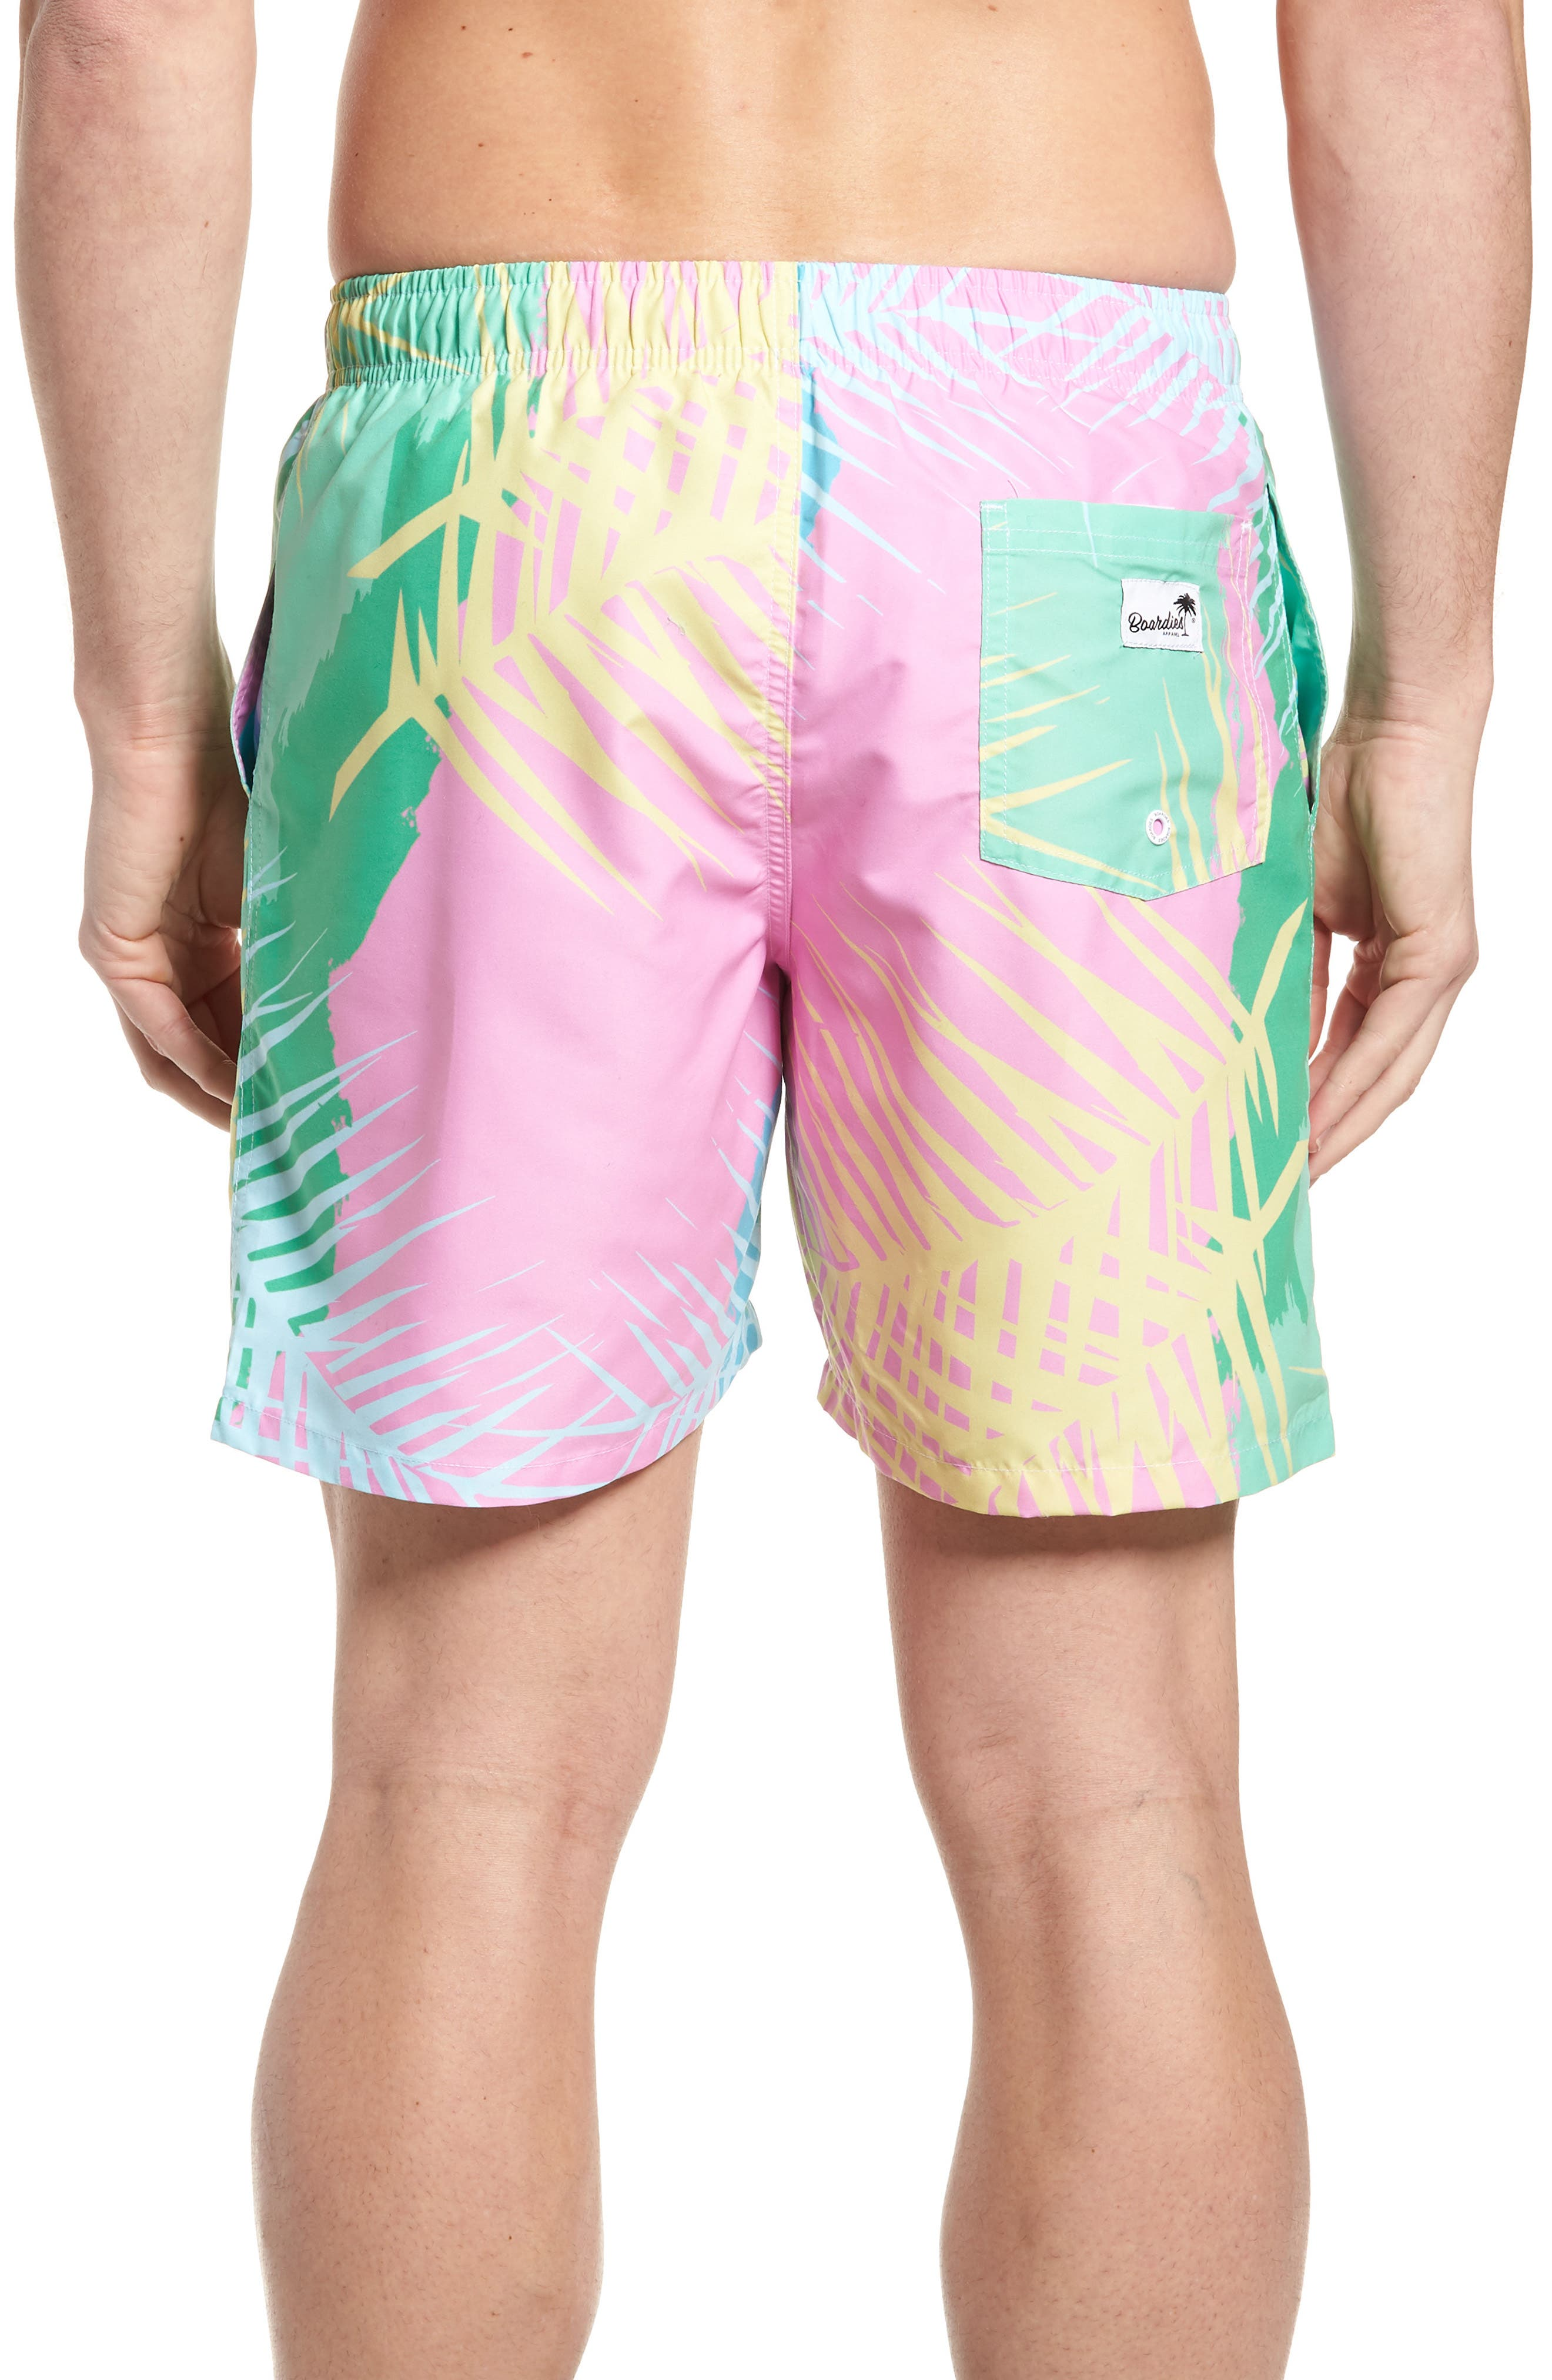 Tropicano Swim Trunks,                             Alternate thumbnail 2, color,                             650